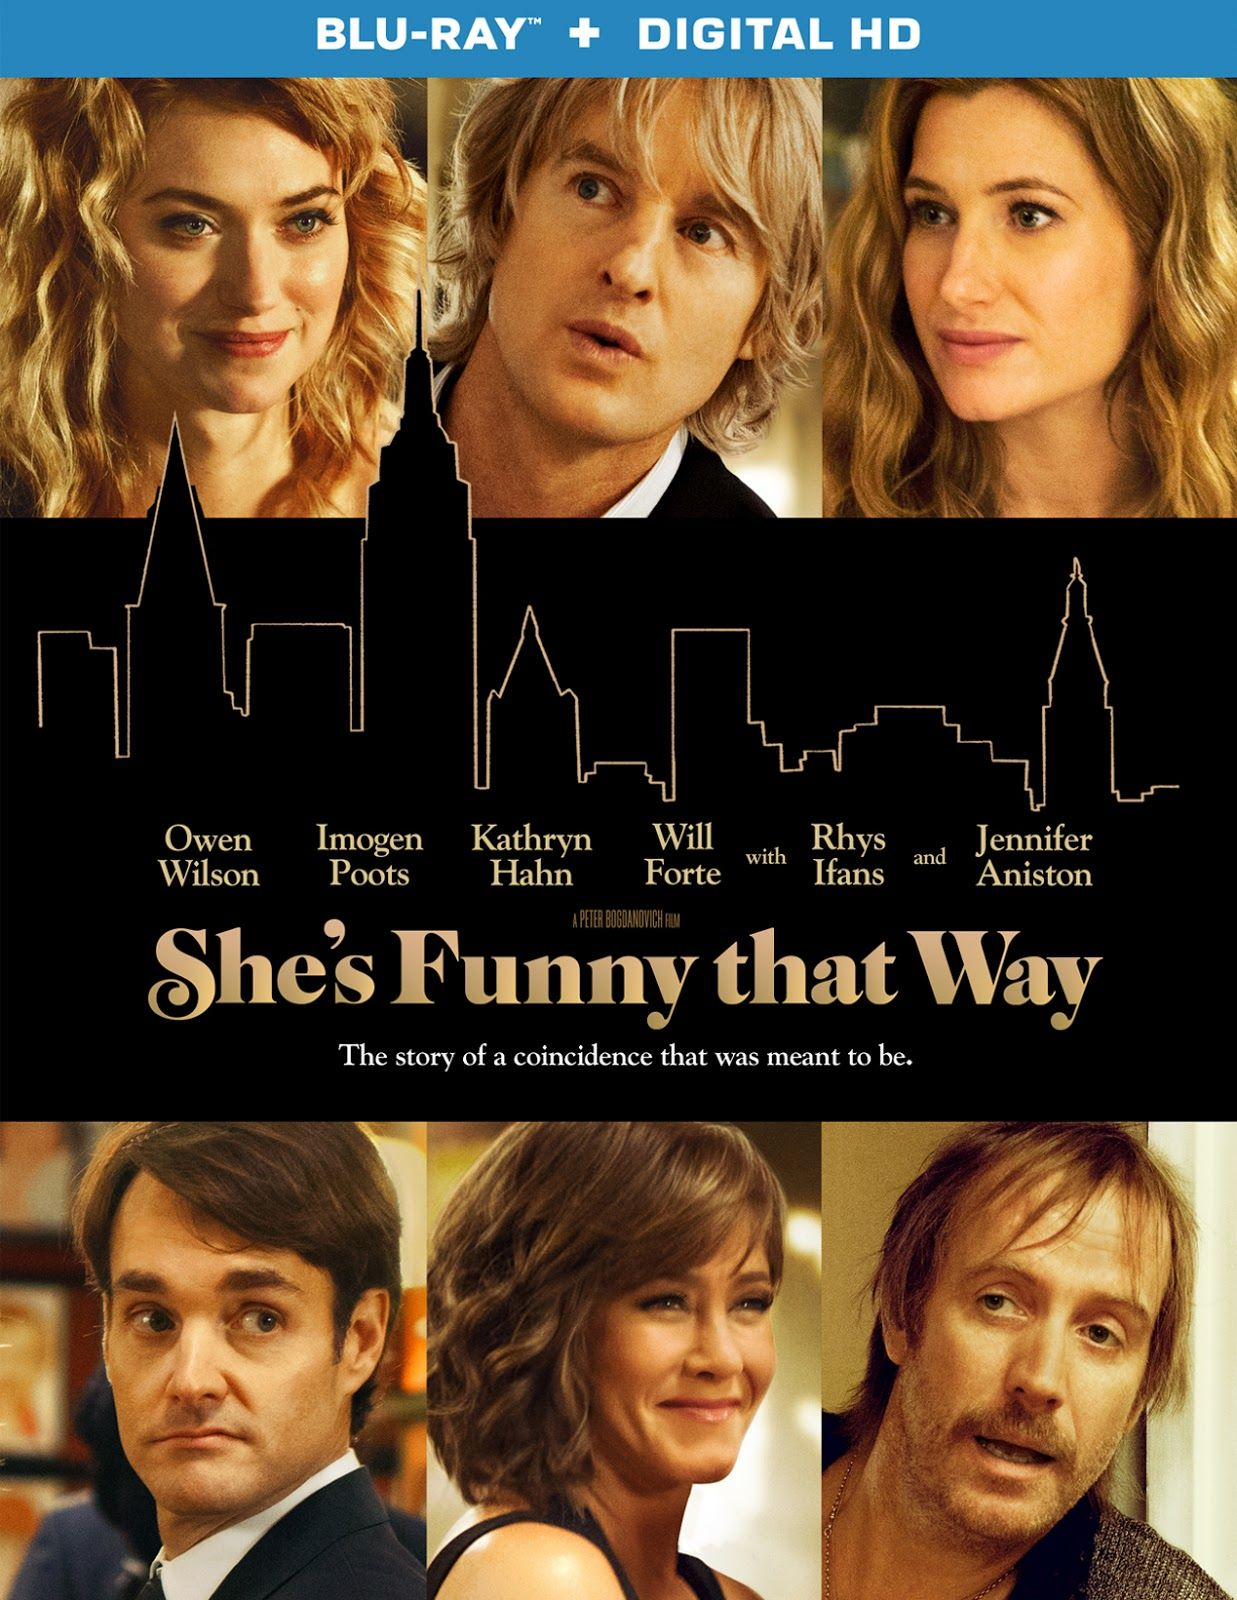 Dvd bluray shes funny that way 2015 blu ray